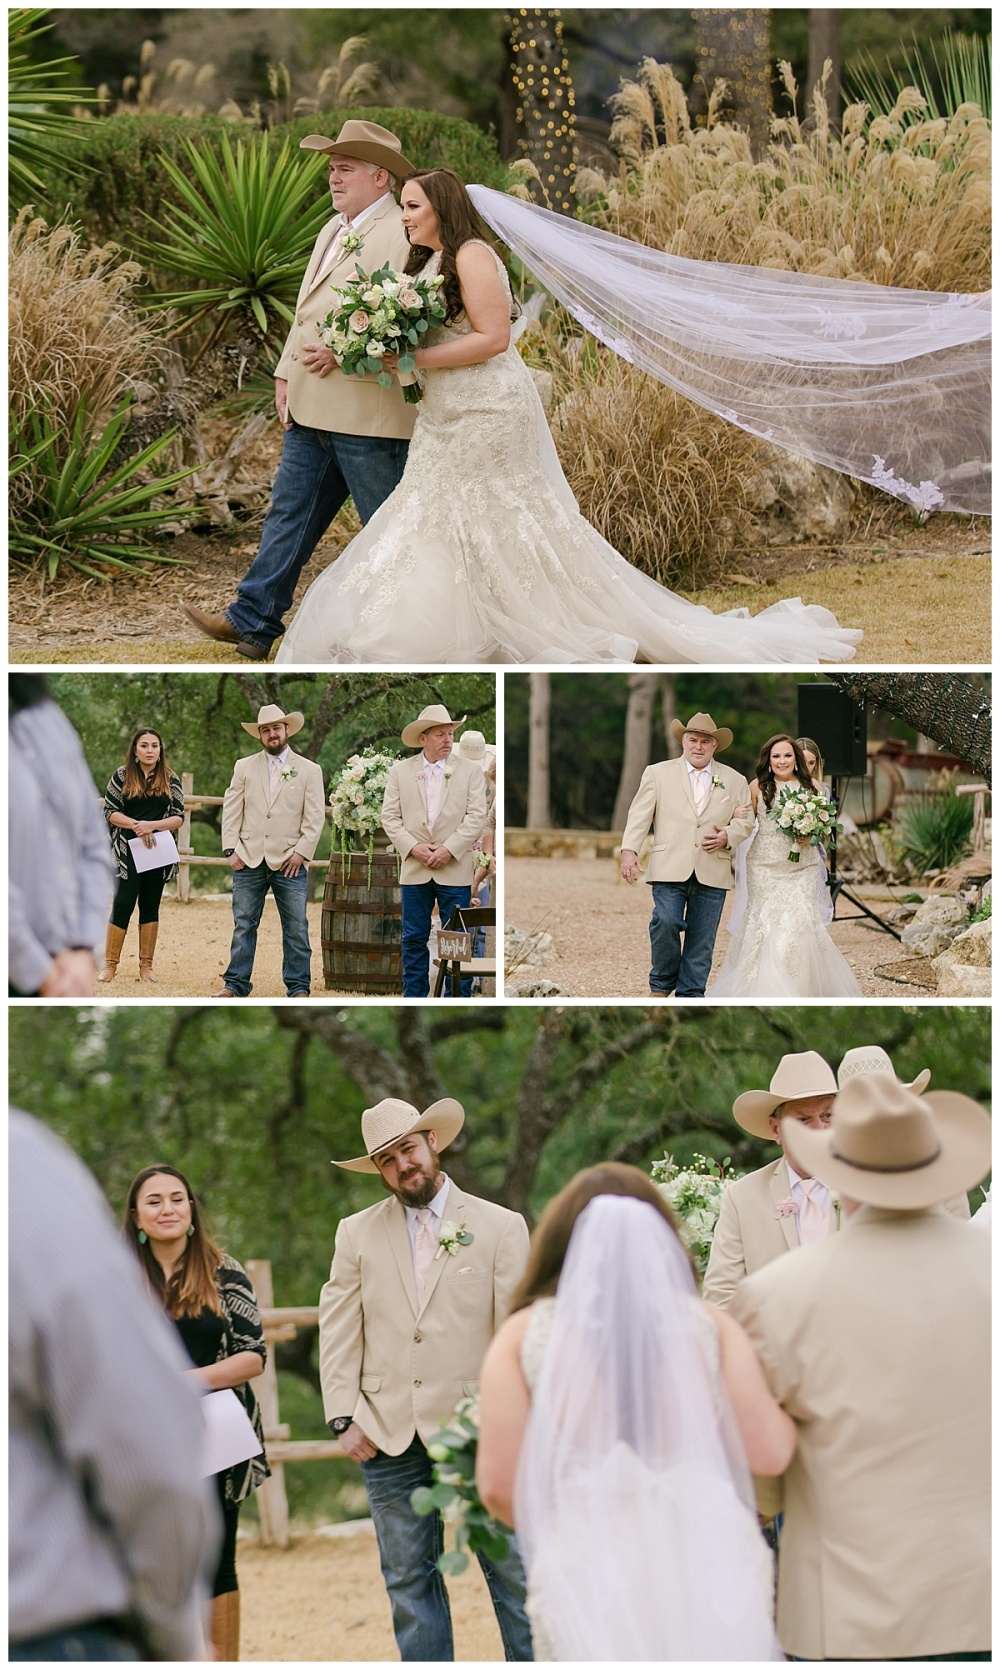 Carly-Barton-Photography-Branded-T-Ranch-Kendalia-Texas-Hill-Country-Wedding_0029.jpg